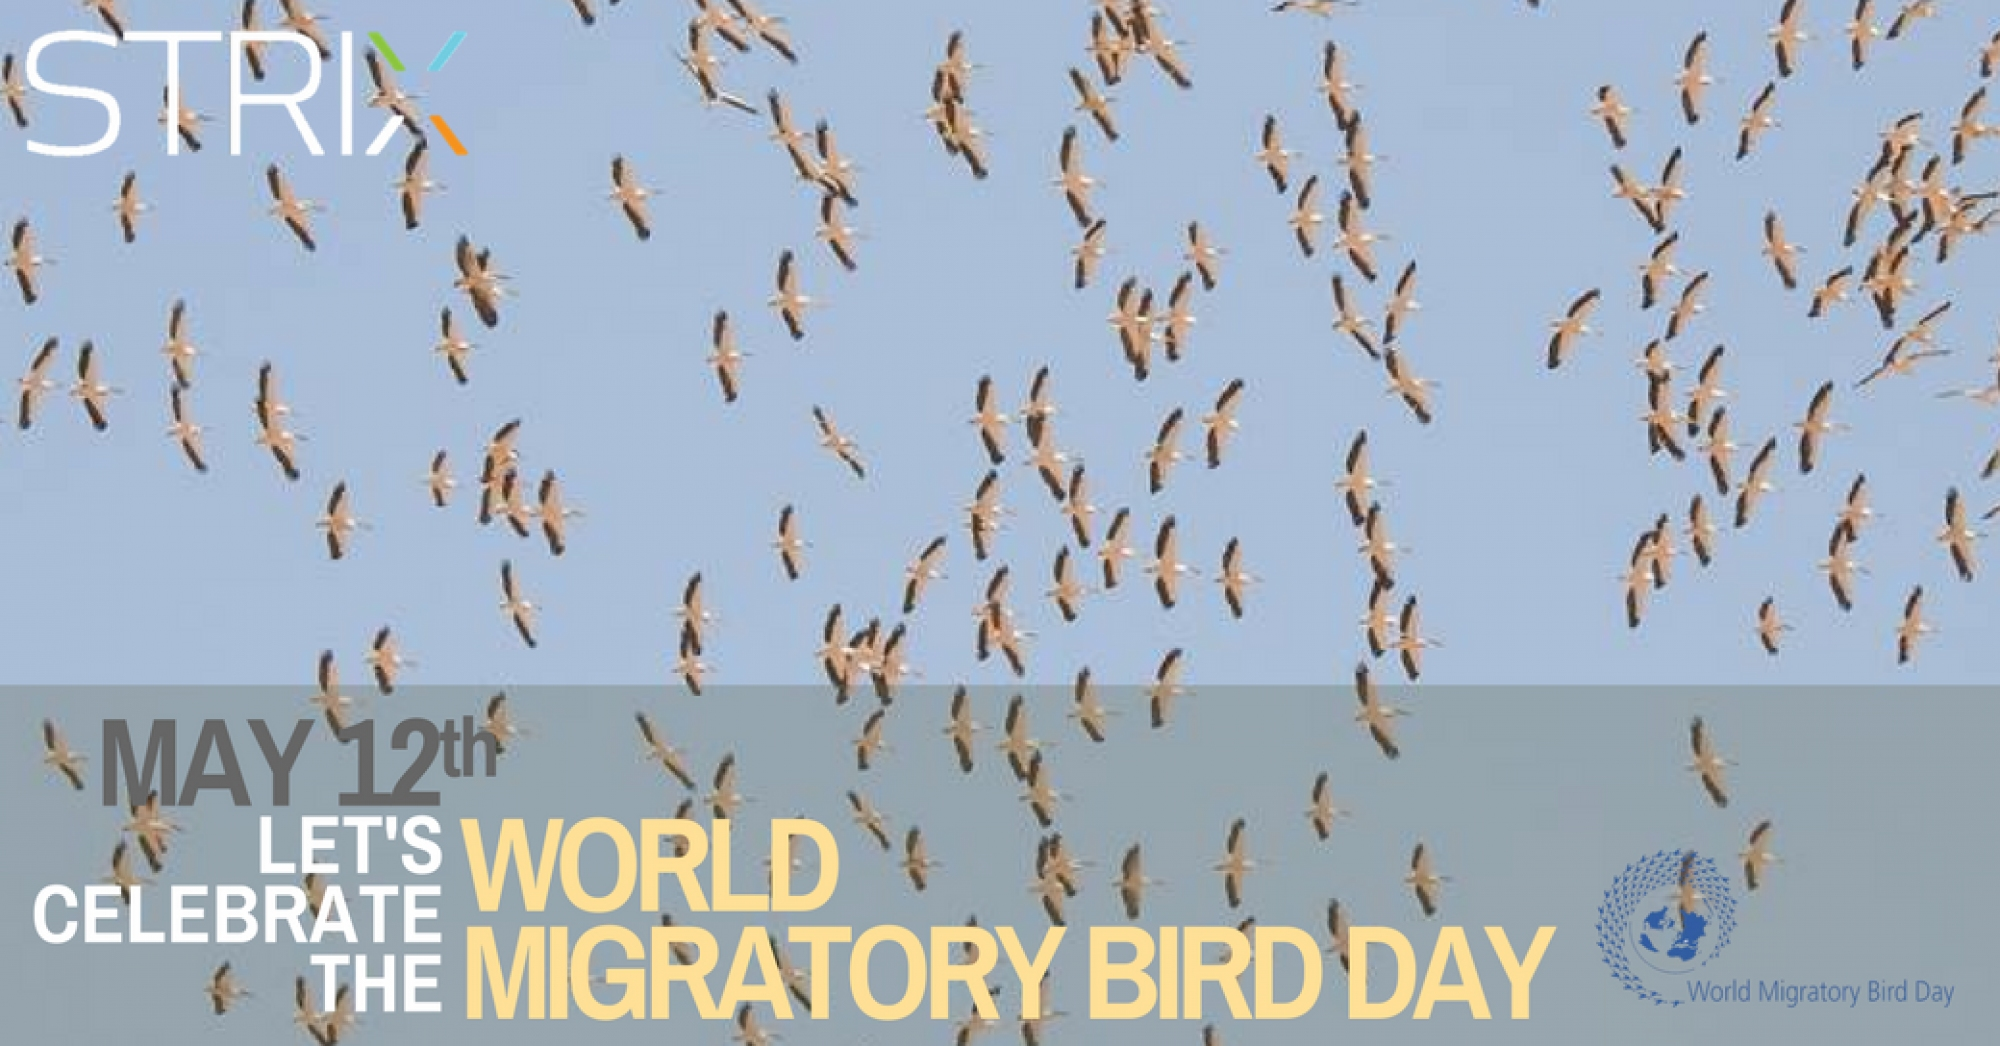 Let's Celebrate the World Migratory Bird Day